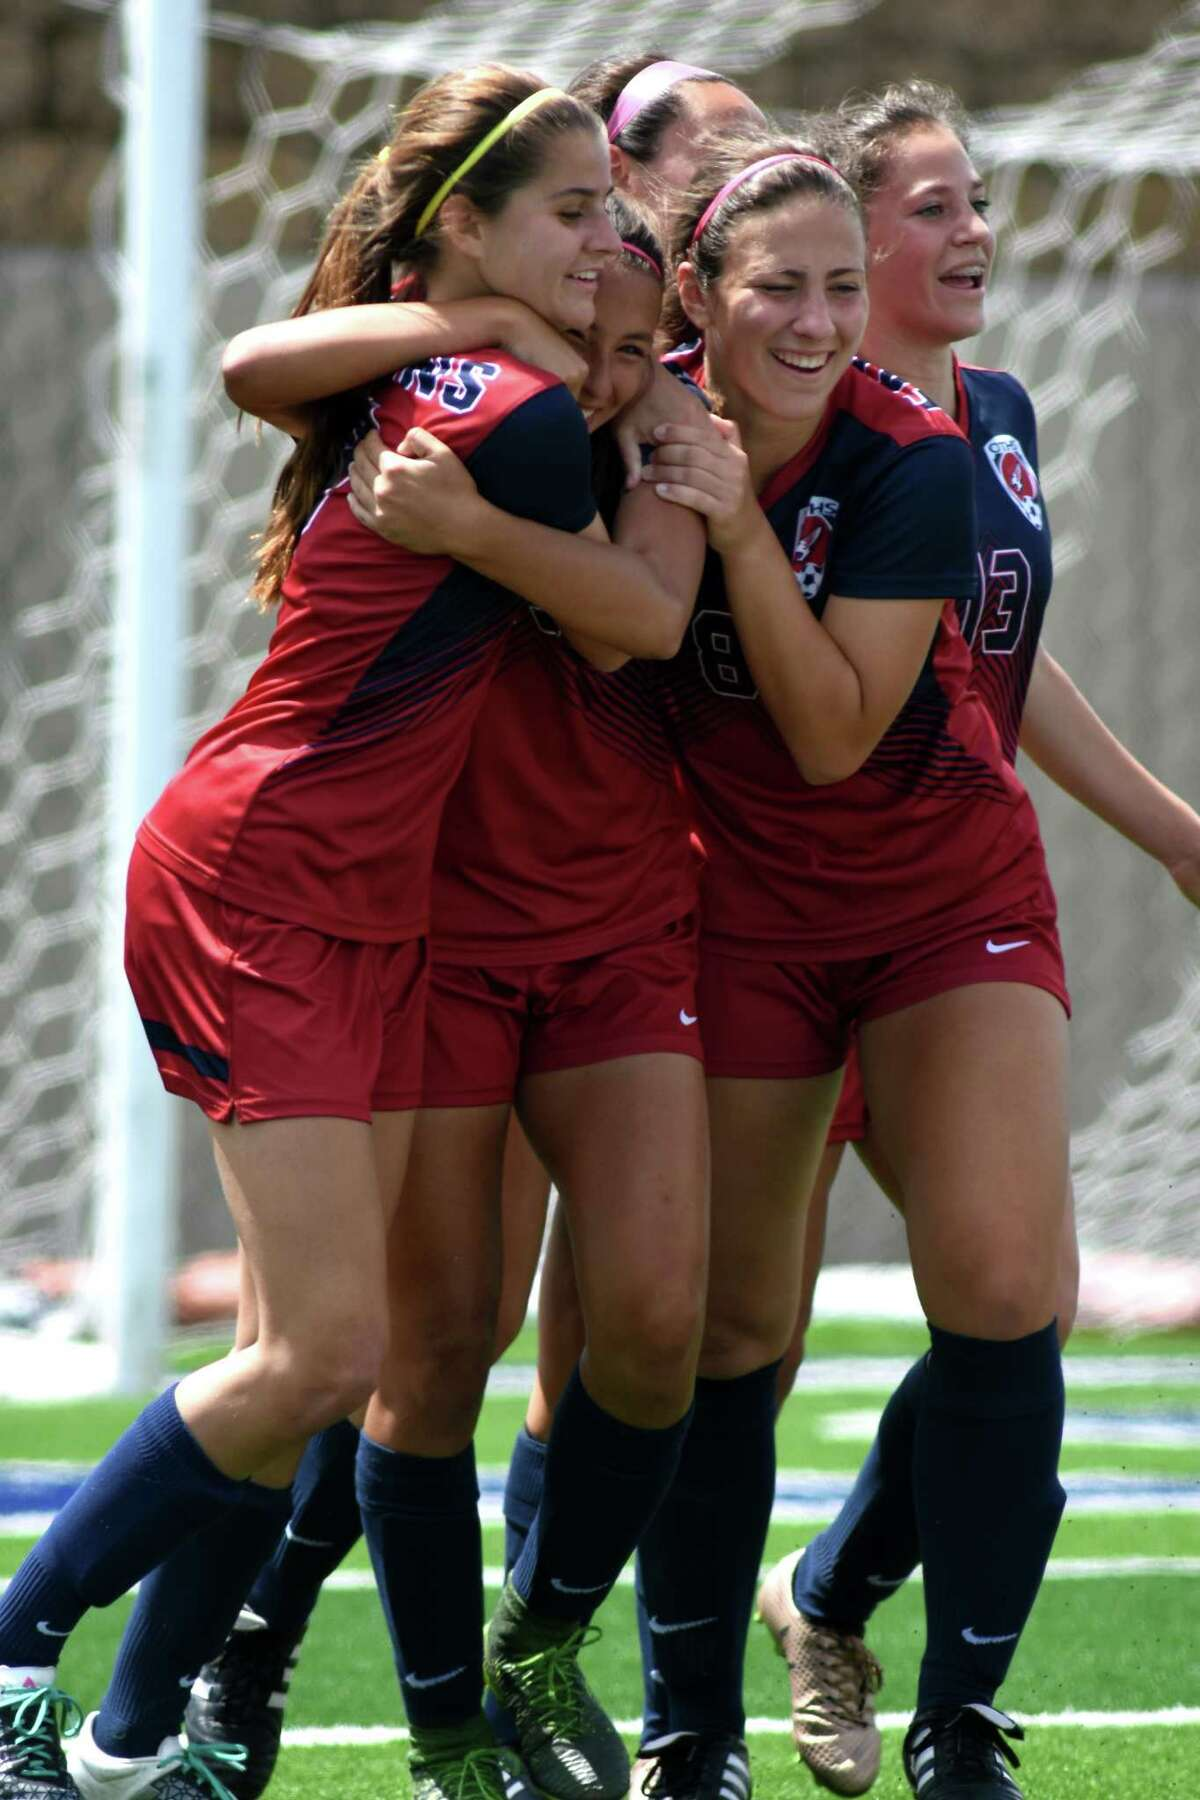 Katy Tompkins' Elana Wolf, from left, Barbara Olivieri, Kayla Ruopp, and Terin Graham celebrate Olivieri's first half goal against Austin Vandegrift during their Class 6A Girls semifinal matchup at the 2017 UIL Soccer State Championships at Birkelbach Field in Georgetown on April 14, 2017. (Photo by Jerry Baker/Freelance)